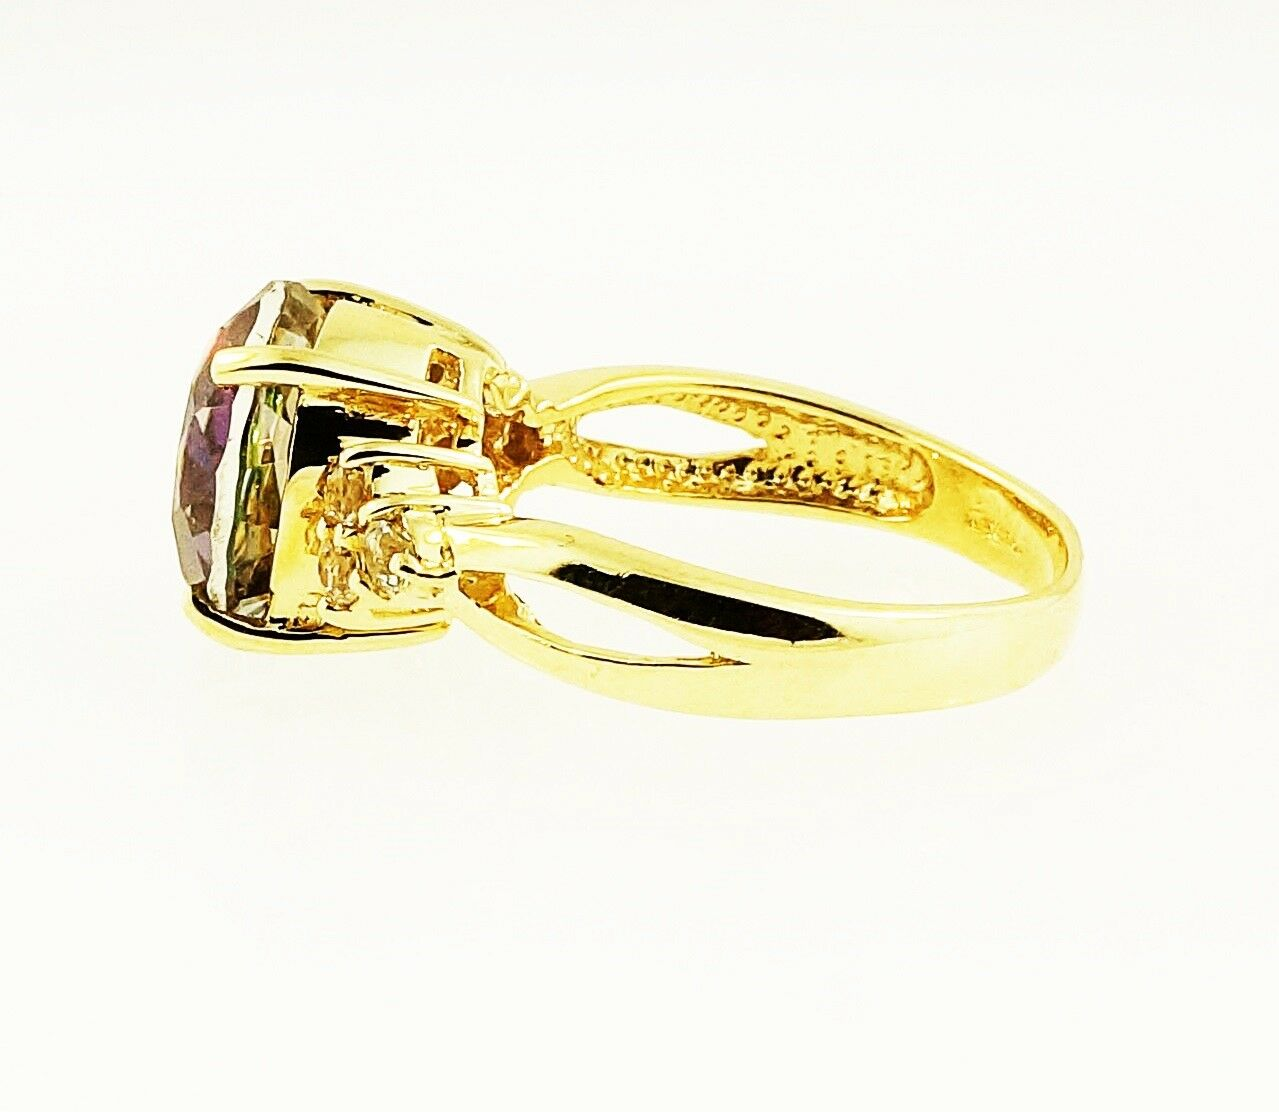 9carat Yellow Gold 10mm Mystic Amp White Topaz Solitaire W